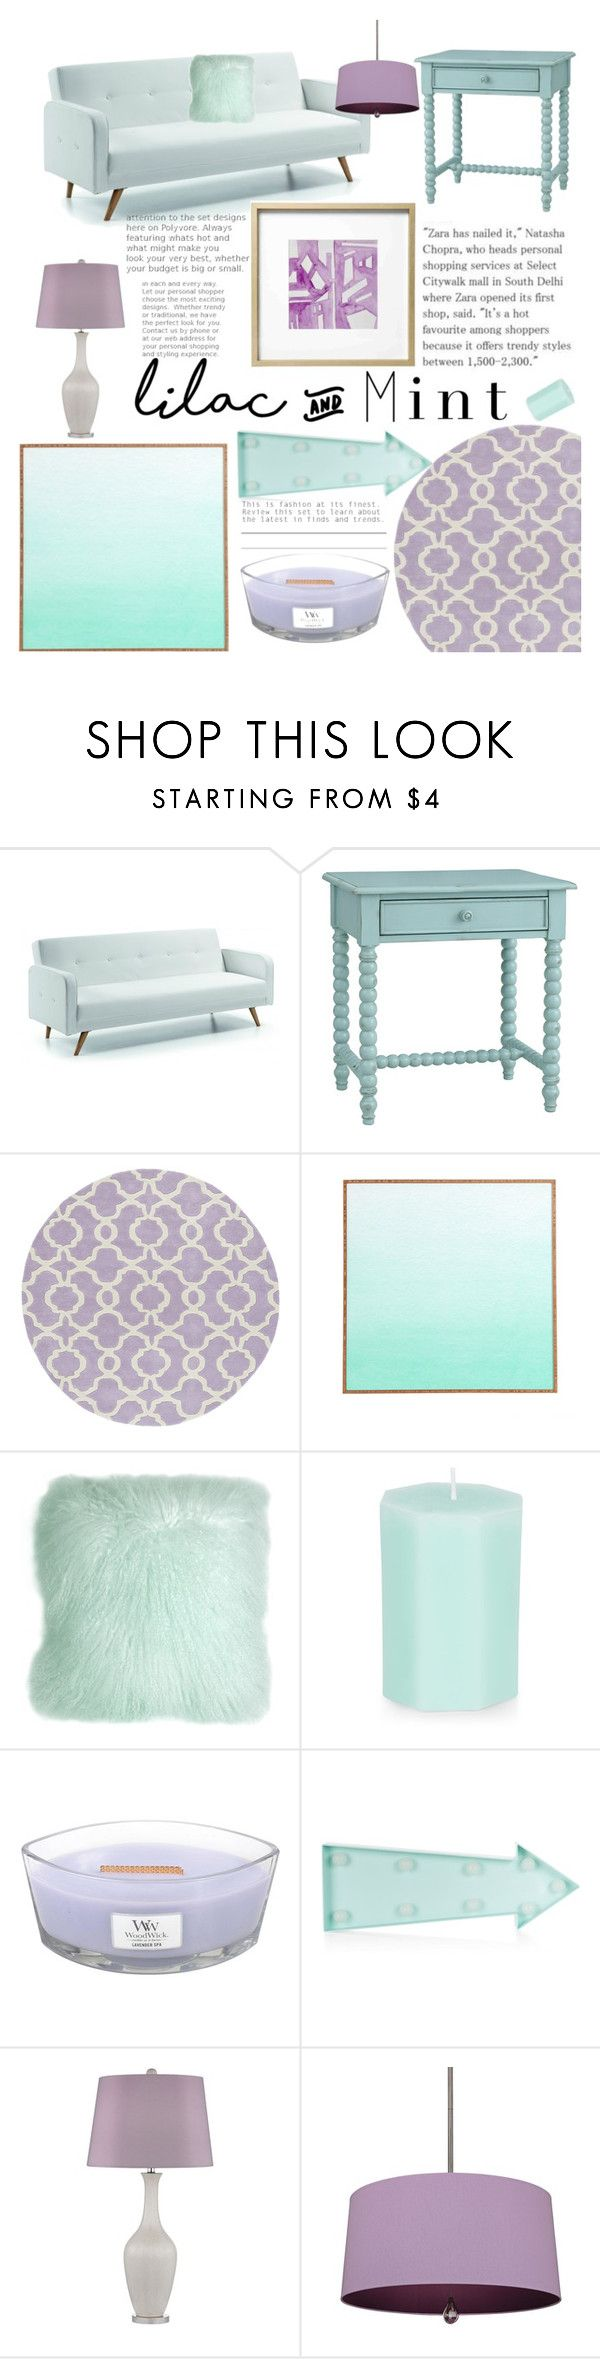 """Lilac & Mint"" by ashstylist101 on Polyvore featuring interior, interiors, interior design, home, home decor, interior decorating, Redford House, Pillow Decor, New Look and WoodWick"